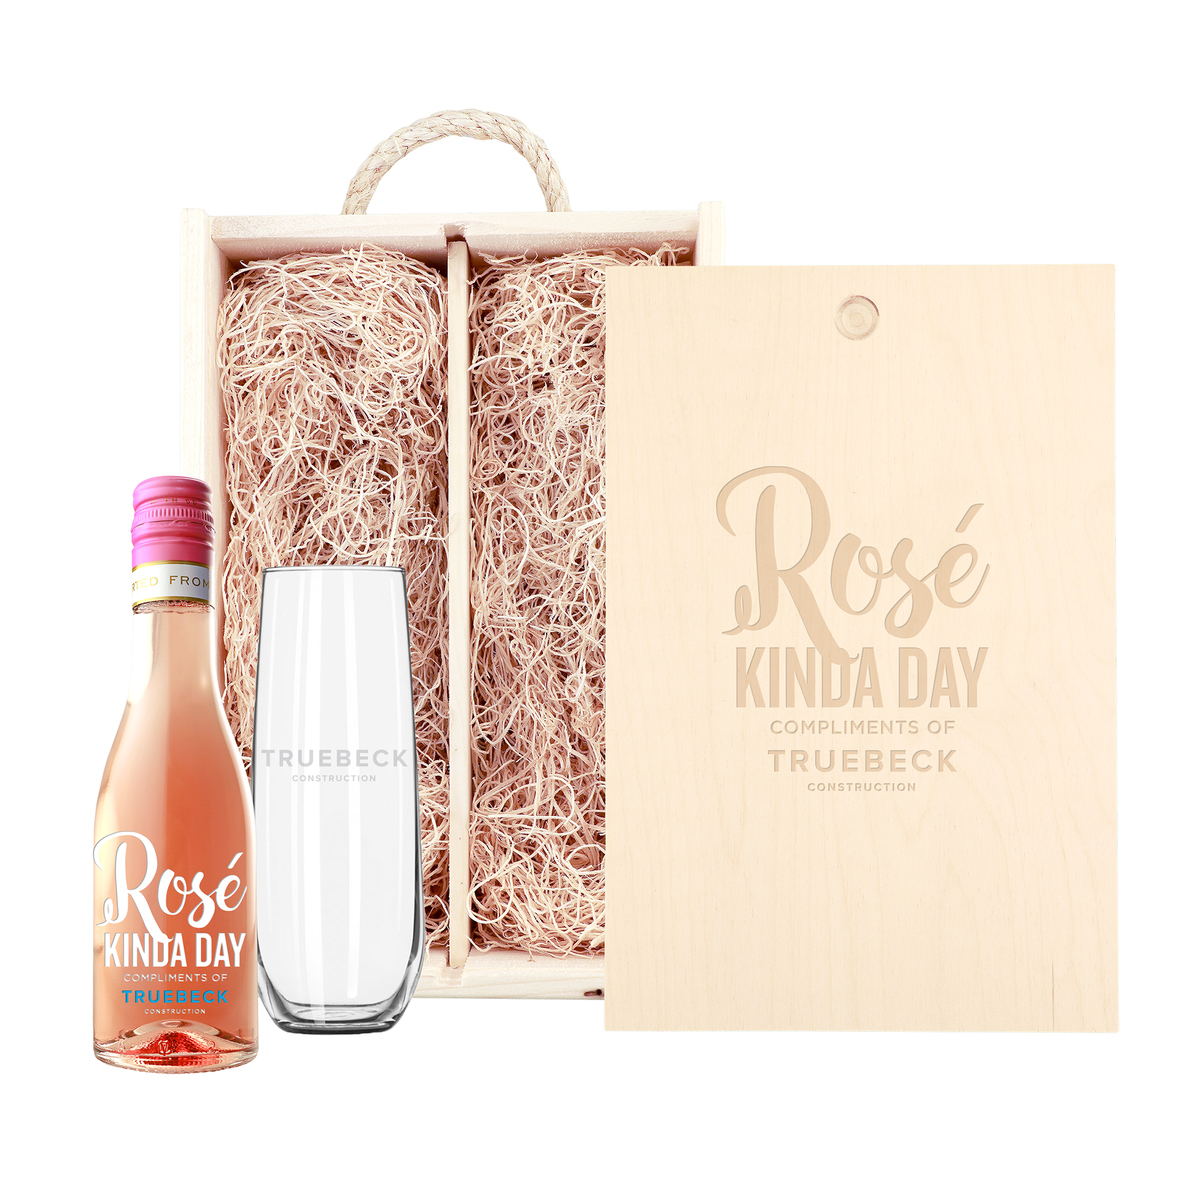 Wine & Spirited Gifts